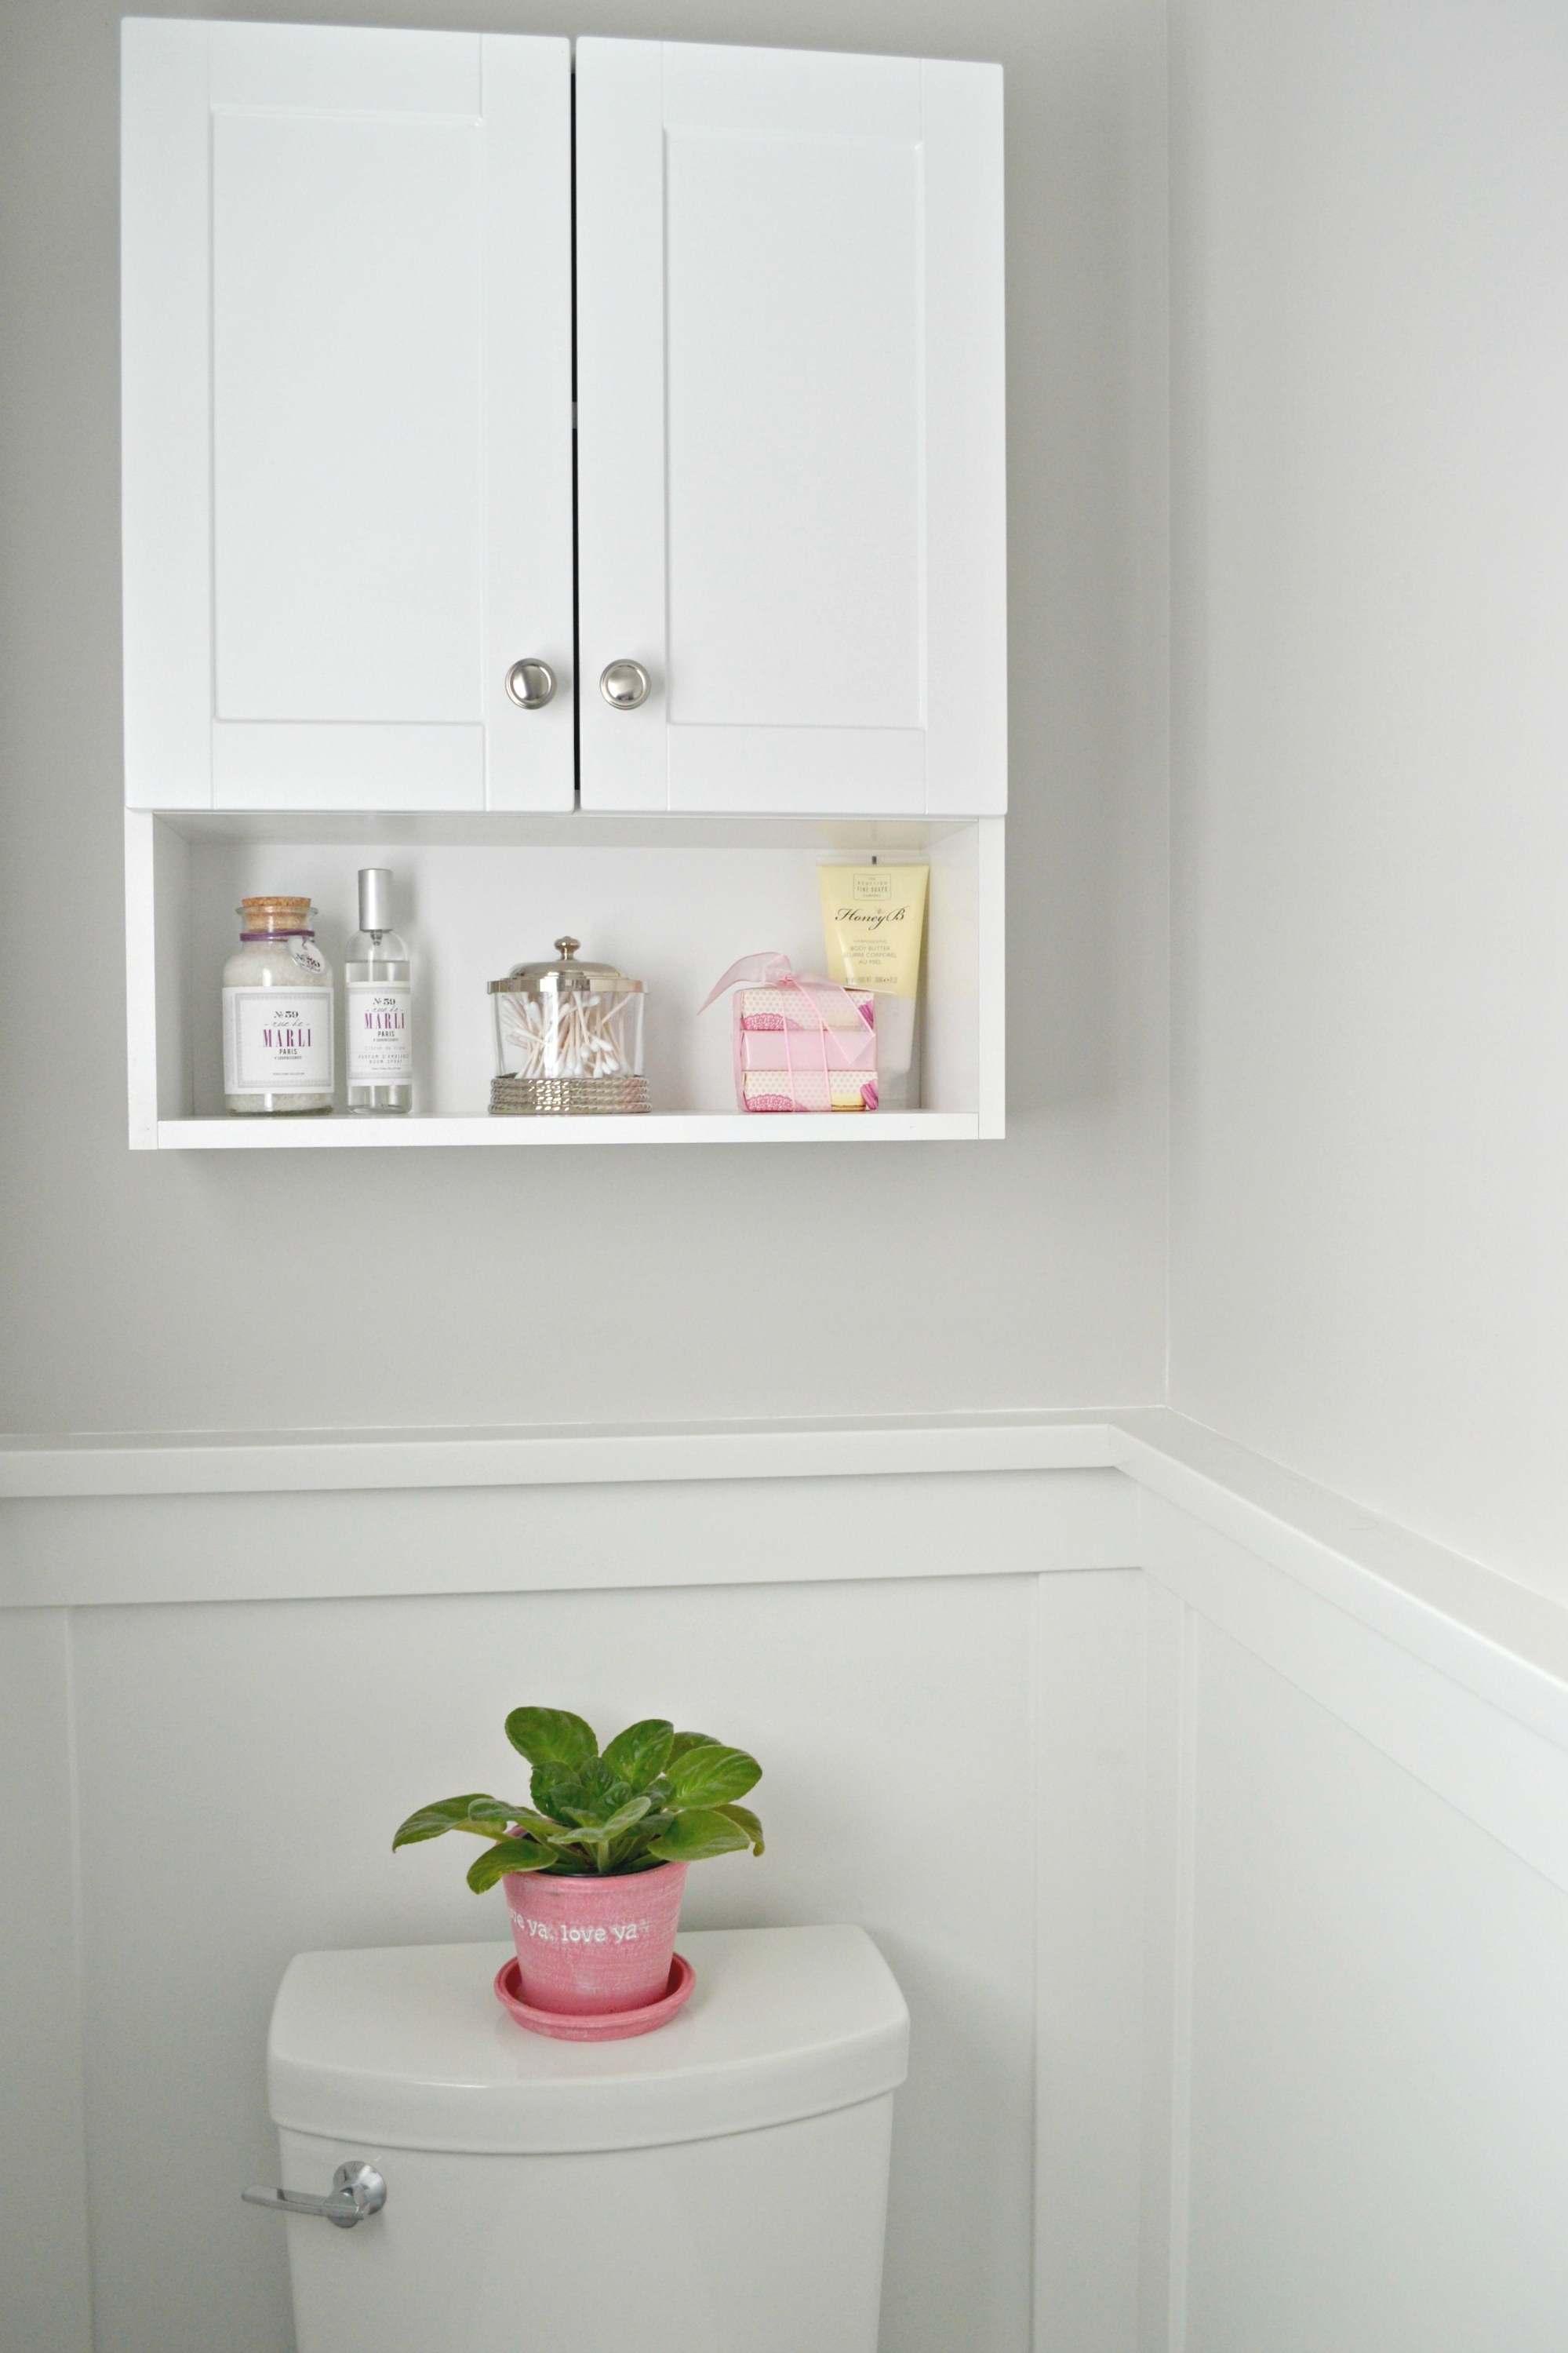 I did add a cabinet above the toilet for some storage for guests and extra toiletries.